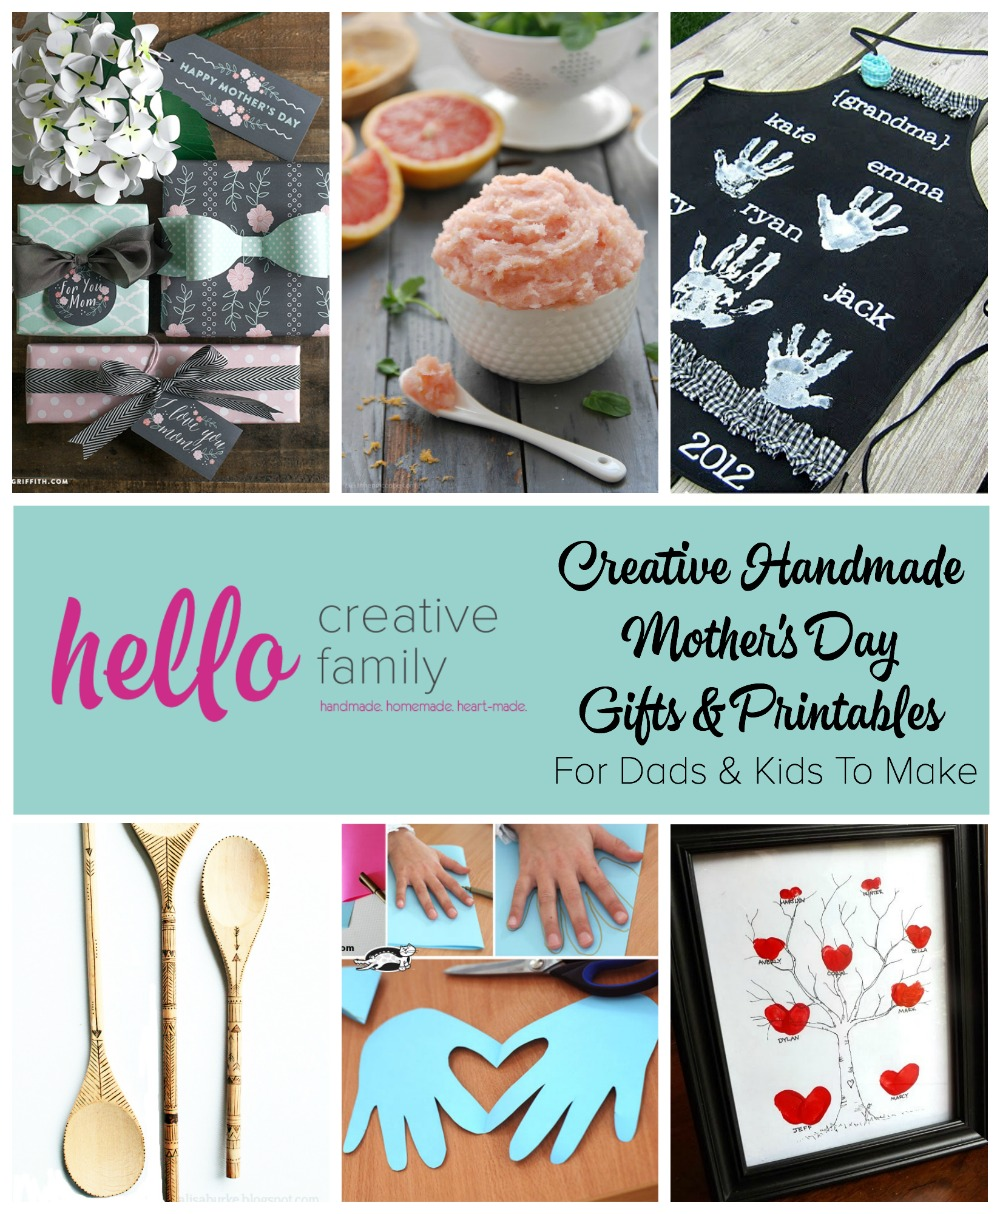 Creative Handmade Mother's Day Gifts and Printables for Dads and Kids To Make